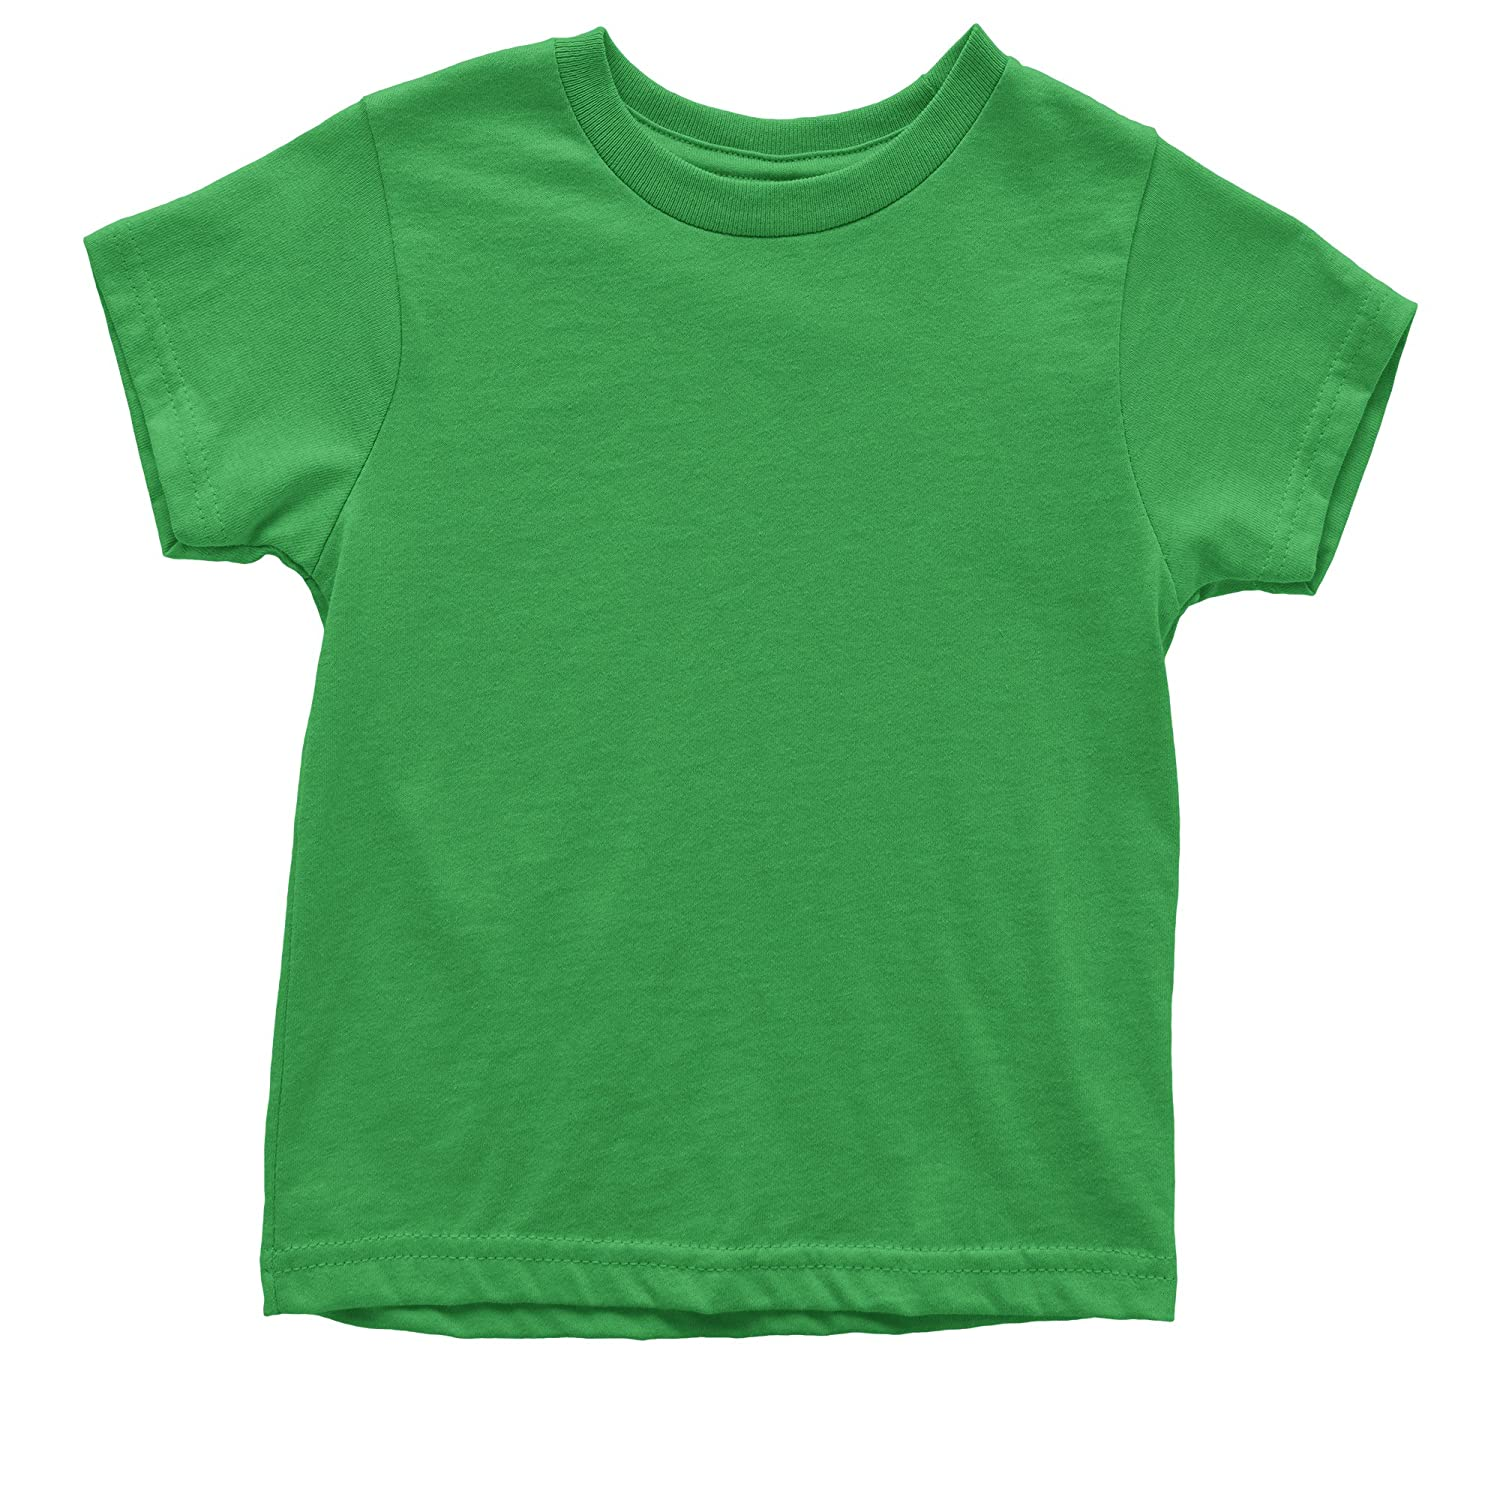 7c2d0bece 100% Pre-shrunk Cotton Get back to basics with our Plain Blank clothing.  Great clothing at a great price. Printed and designed in the U.S.A. using  top ...